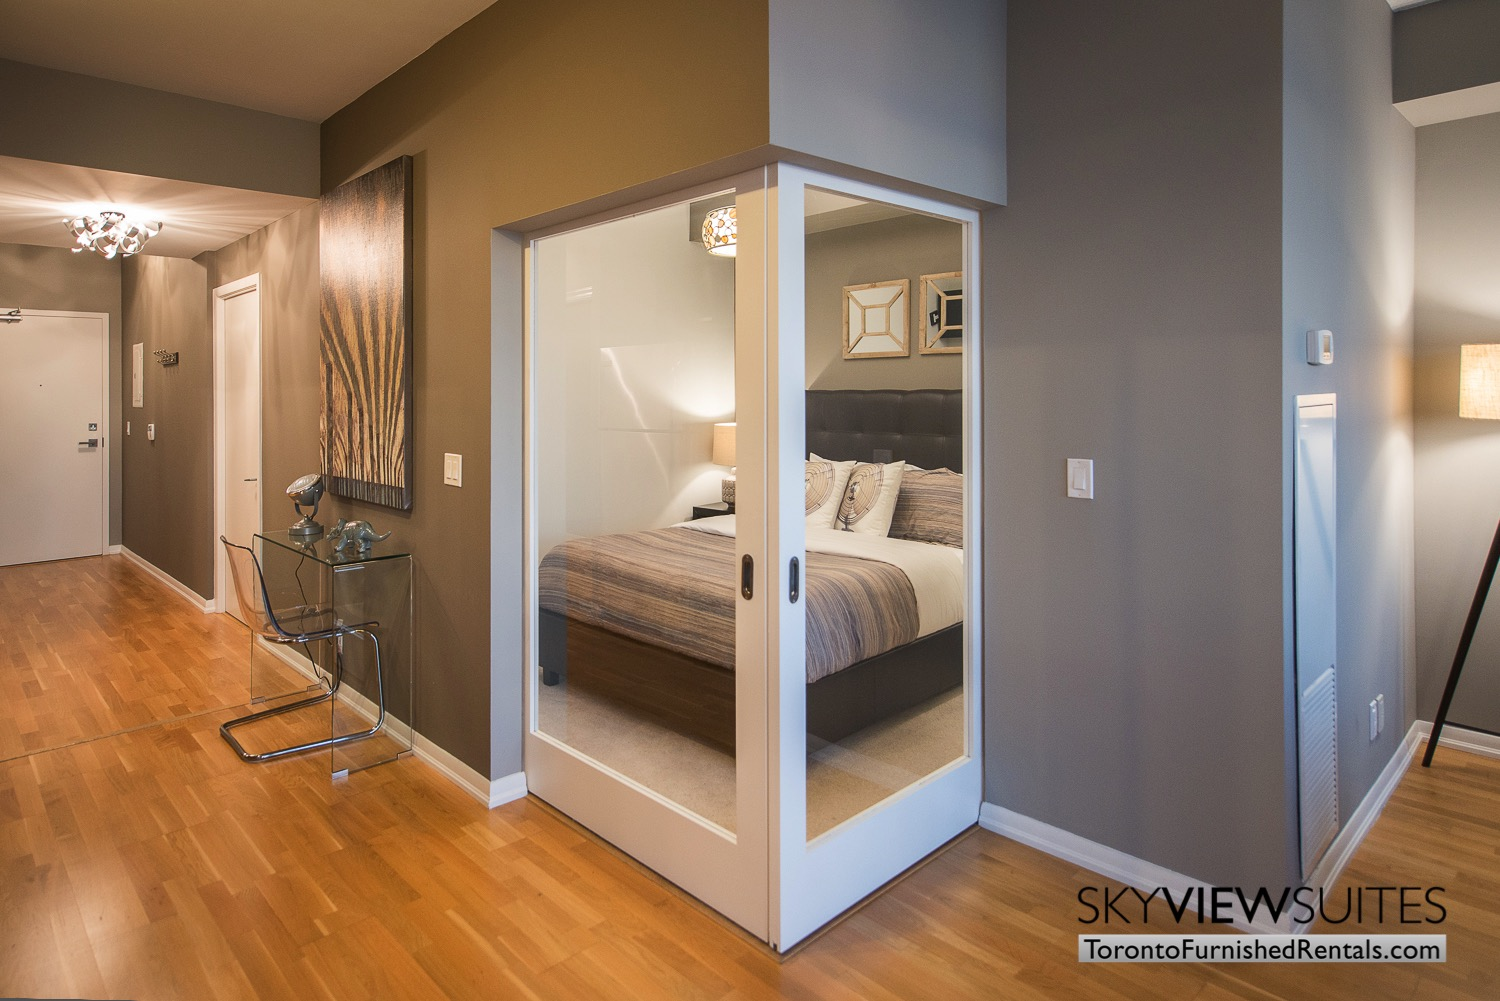 furnished-apartments-toronto-bedroom-and-college